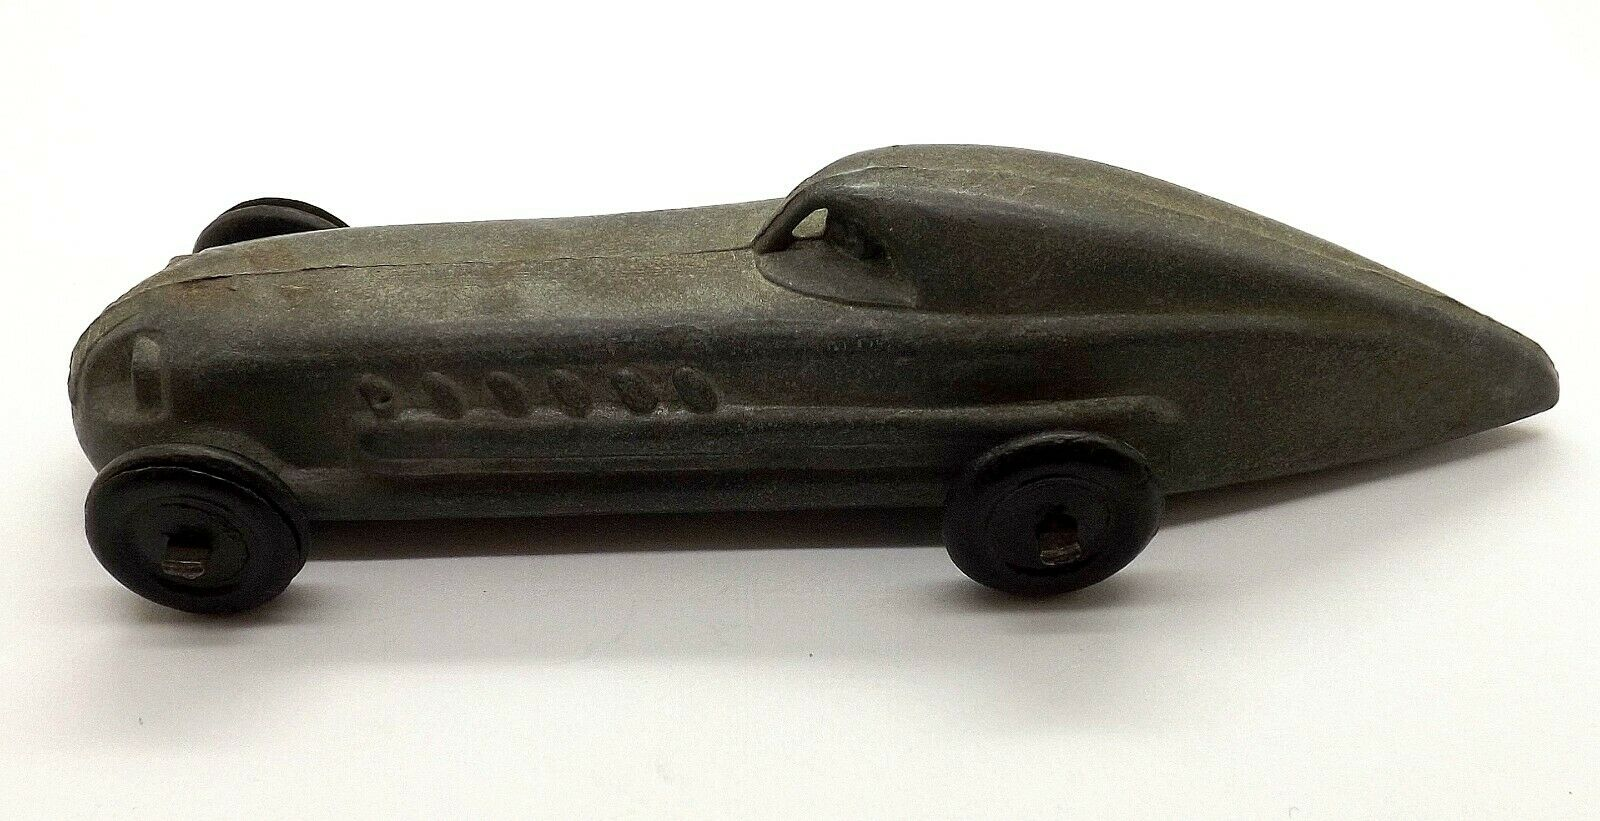 designer online ANTIQUE 1920'S TOOTSIE OR TIP TOP giocattolo OR DIECAST DIECAST DIECAST giocattolo auto RACE auto  offrendo il 100%